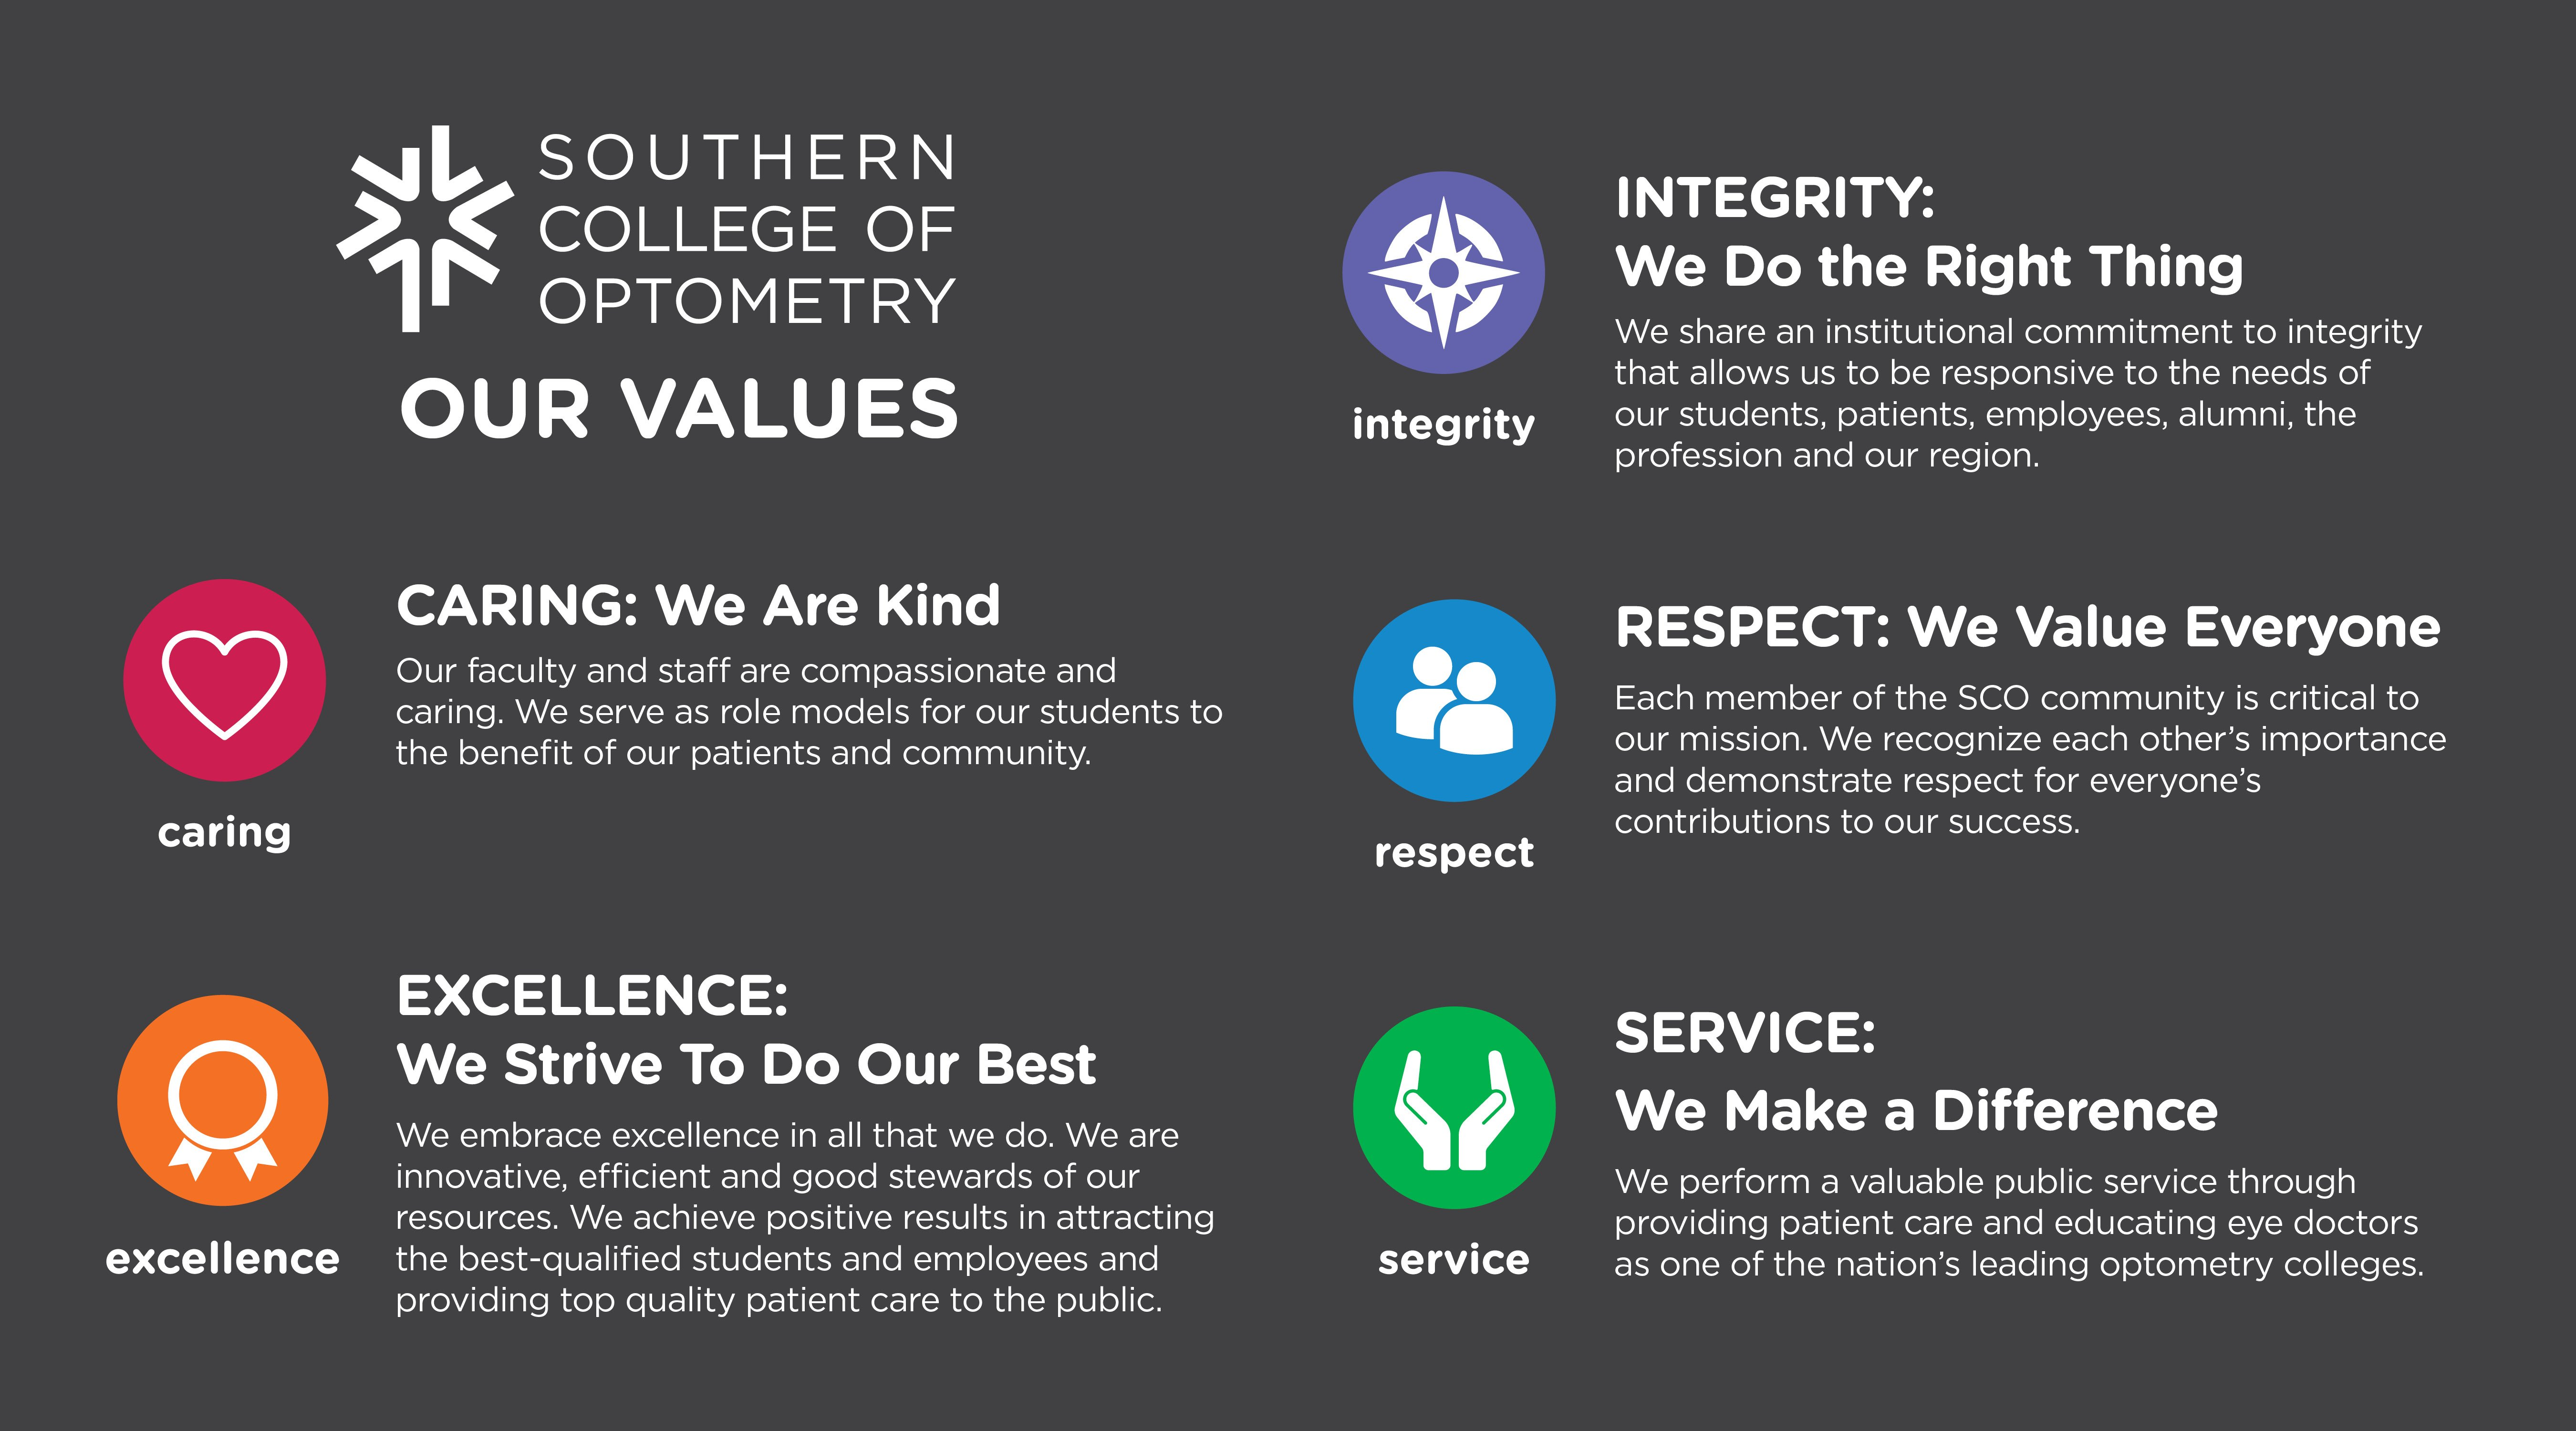 Southern College of Optometry Values